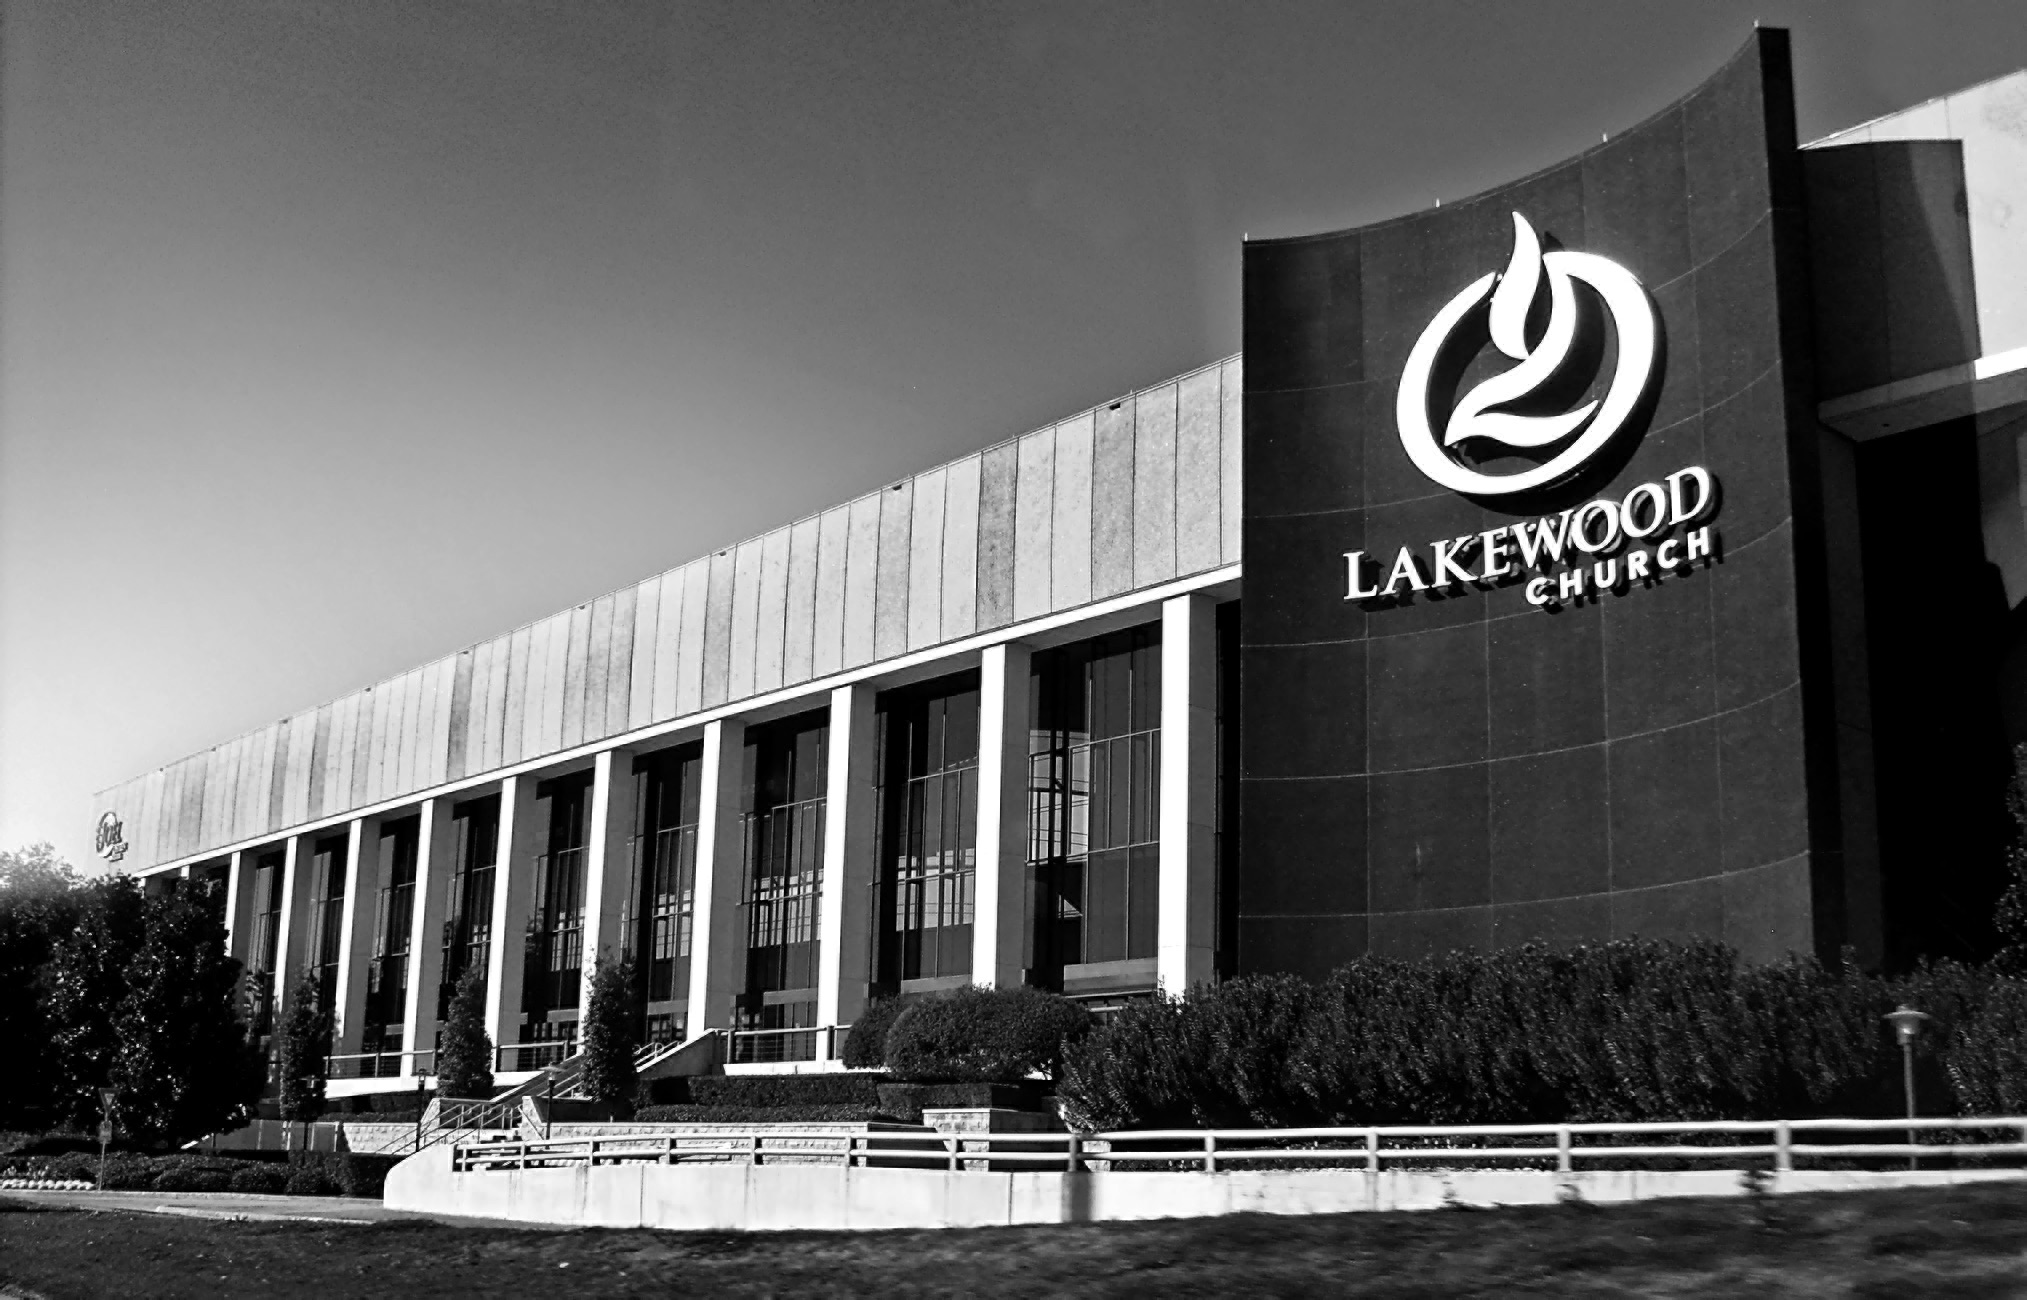 Joel Osteen is the senior pastor of Lakewood Church in Houston. Photo Courtesy of Wikimedia Commons, the free media repository